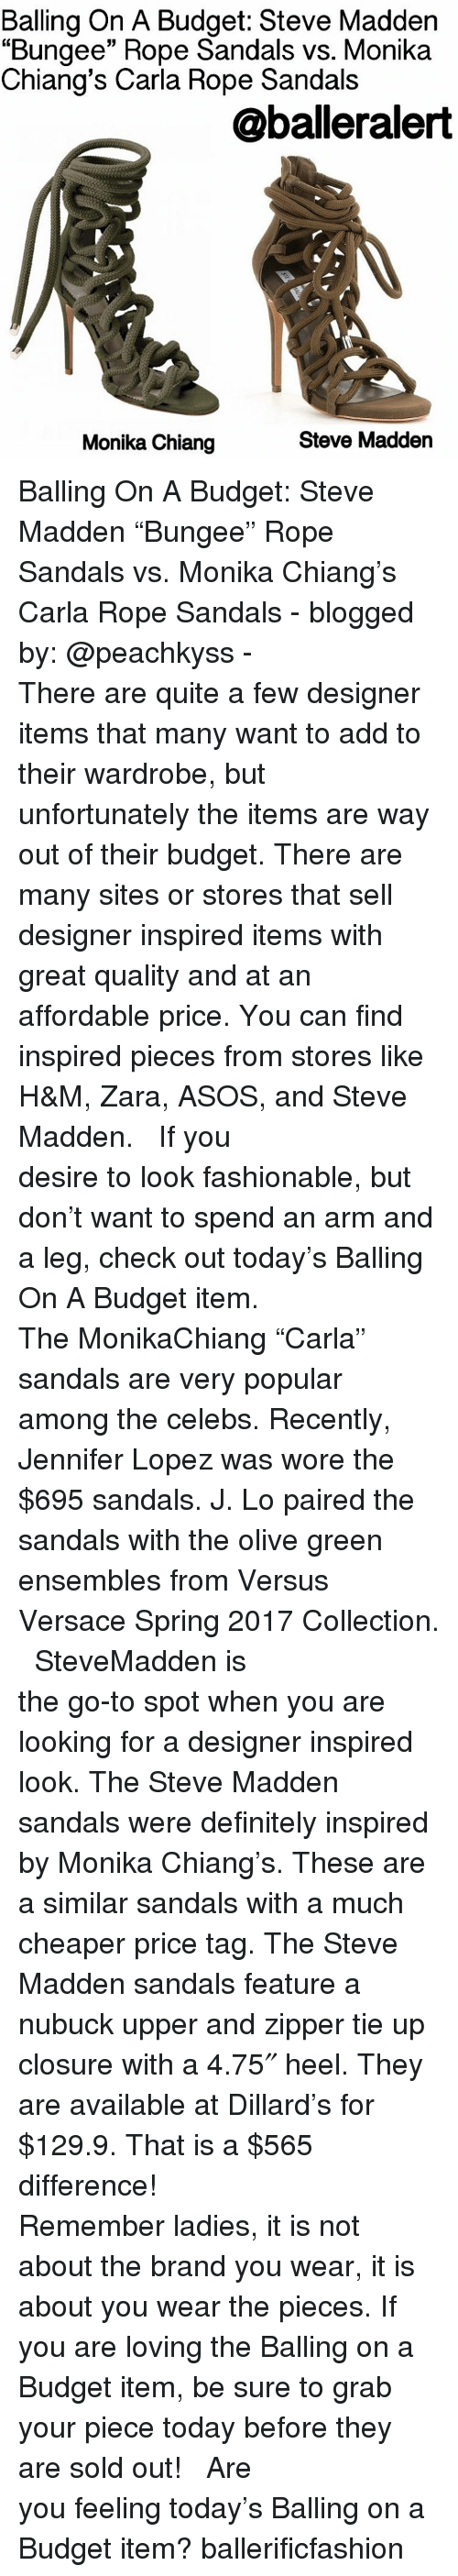 "Definitely, Jennifer Lopez, and Memes: Balling On A Budget: Steve Madden  ""Bungee"" Rope Sandals vs. Monika  Chiang's Carla Rope Sandals  @balleralert  Steve Madden  Monika Chiang Balling On A Budget: Steve Madden ""Bungee"" Rope Sandals vs. Monika Chiang's Carla Rope Sandals - blogged by: @peachkyss - ⠀⠀⠀⠀⠀⠀⠀⠀⠀ ⠀⠀⠀⠀⠀⠀⠀⠀⠀ There are quite a few designer items that many want to add to their wardrobe, but unfortunately the items are way out of their budget. There are many sites or stores that sell designer inspired items with great quality and at an affordable price. You can find inspired pieces from stores like H&M, Zara, ASOS, and Steve Madden. ⠀⠀⠀⠀⠀⠀⠀⠀⠀ ⠀⠀⠀⠀⠀⠀⠀⠀⠀ If you desire to look fashionable, but don't want to spend an arm and a leg, check out today's Balling On A Budget item. ⠀⠀⠀⠀⠀⠀⠀⠀⠀ ⠀⠀⠀⠀⠀⠀⠀⠀⠀ The MonikaChiang ""Carla"" sandals are very popular among the celebs. Recently, Jennifer Lopez was wore the $695 sandals. J. Lo paired the sandals with the olive green ensembles from Versus Versace Spring 2017 Collection. ⠀⠀⠀⠀⠀⠀⠀⠀⠀ ⠀⠀⠀⠀⠀⠀⠀⠀⠀ SteveMadden is the go-to spot when you are looking for a designer inspired look. The Steve Madden sandals were definitely inspired by Monika Chiang's. These are a similar sandals with a much cheaper price tag. The Steve Madden sandals feature a nubuck upper and zipper tie up closure with a 4.75″ heel. They are available at Dillard's for $129.9. That is a $565 difference! ⠀⠀⠀⠀⠀⠀⠀⠀⠀ ⠀⠀⠀⠀⠀⠀⠀⠀⠀ Remember ladies, it is not about the brand you wear, it is about you wear the pieces. If you are loving the Balling on a Budget item, be sure to grab your piece today before they are sold out! ⠀⠀⠀⠀⠀⠀⠀⠀⠀ ⠀⠀⠀⠀⠀⠀⠀⠀⠀ Are you feeling today's Balling on a Budget item? ballerificfashion"